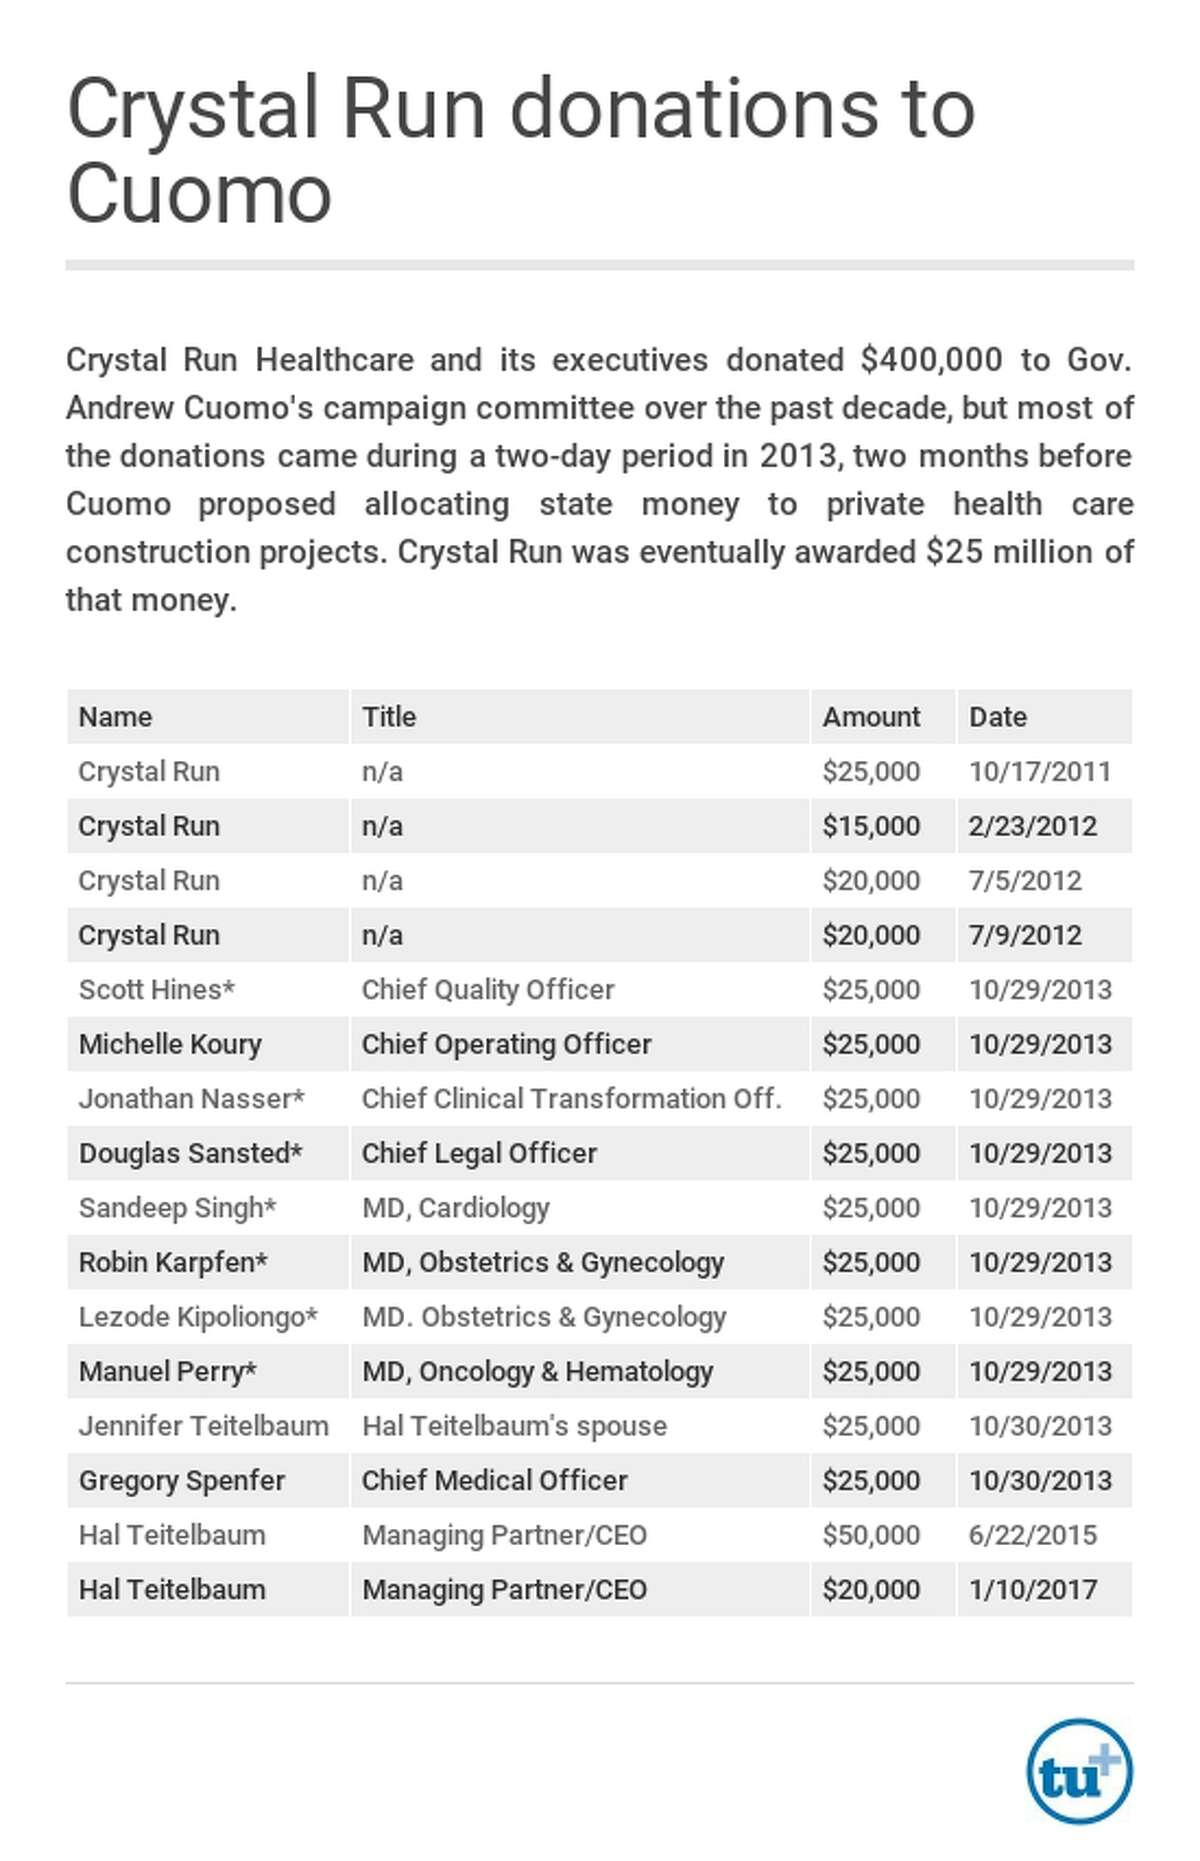 Crystal Run Healthcare donations to Gov. Andrew Cuomo's campaign.